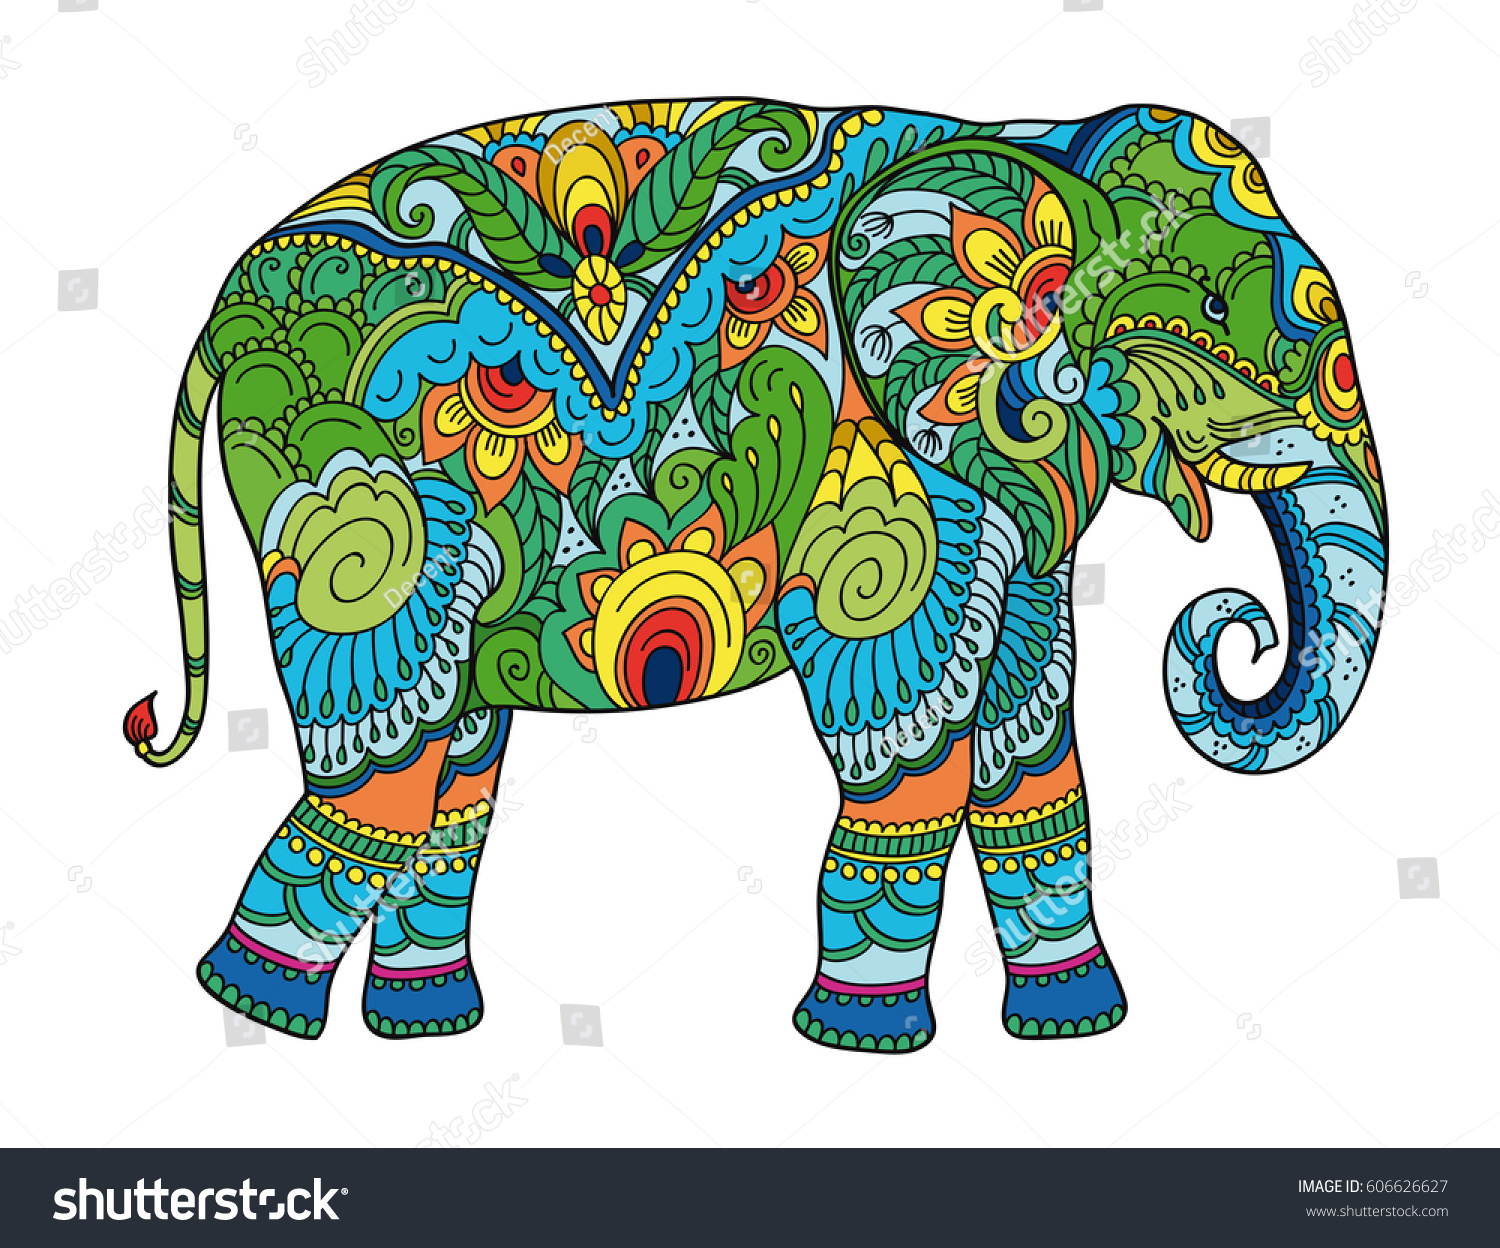 Drawing Stylized Elephant Freehand Sketch For Adult Anti Stress Coloring Book Adultpage With Doodle